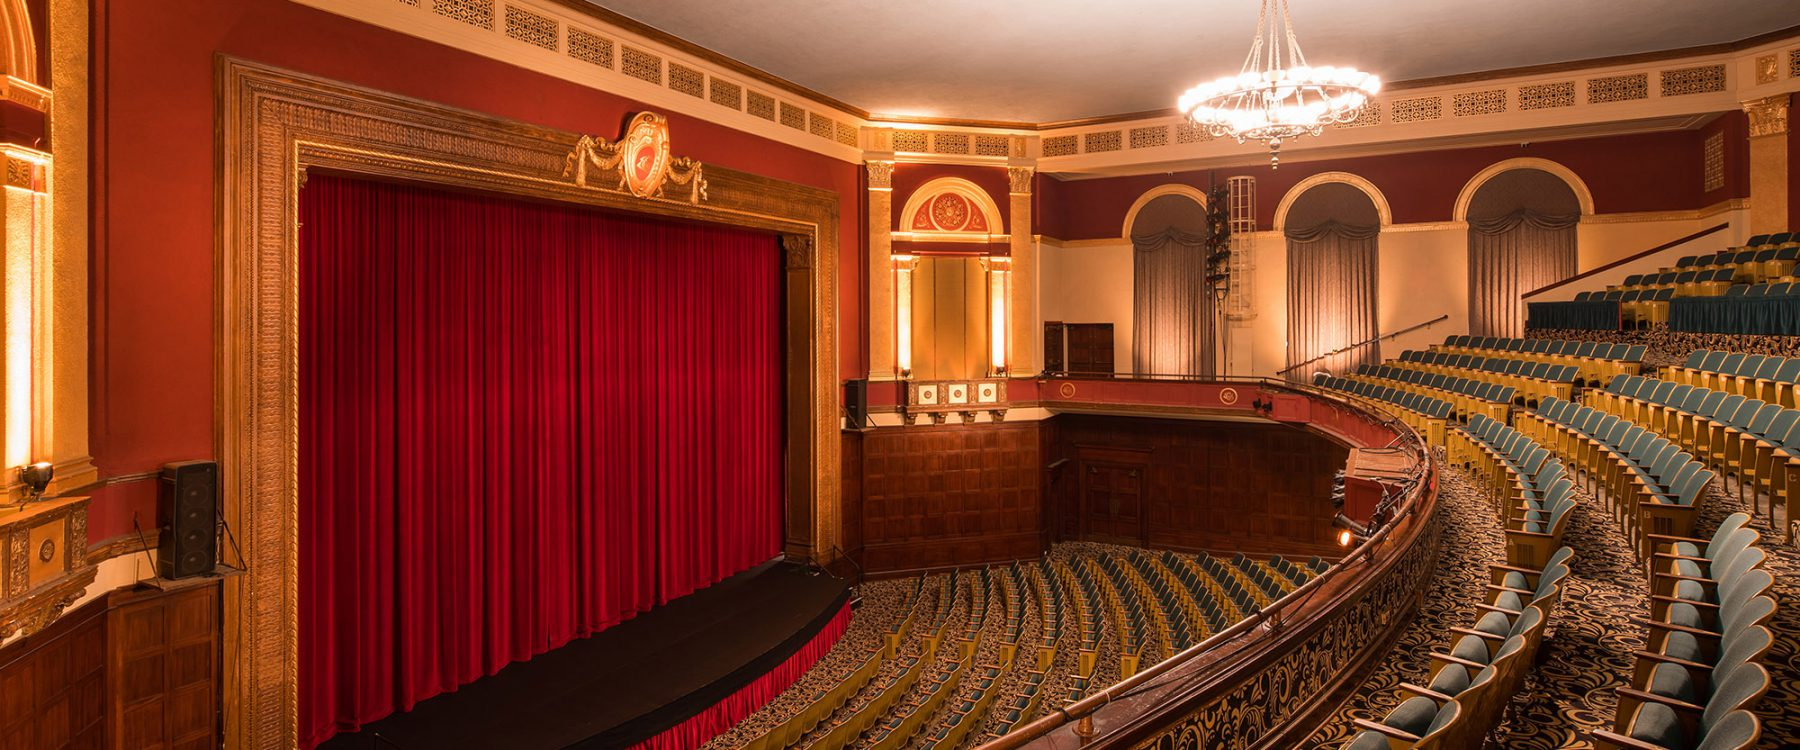 Event Calendar – The Ebell Of Los Angeles Intended For Oc Performing Arts Center Calendar